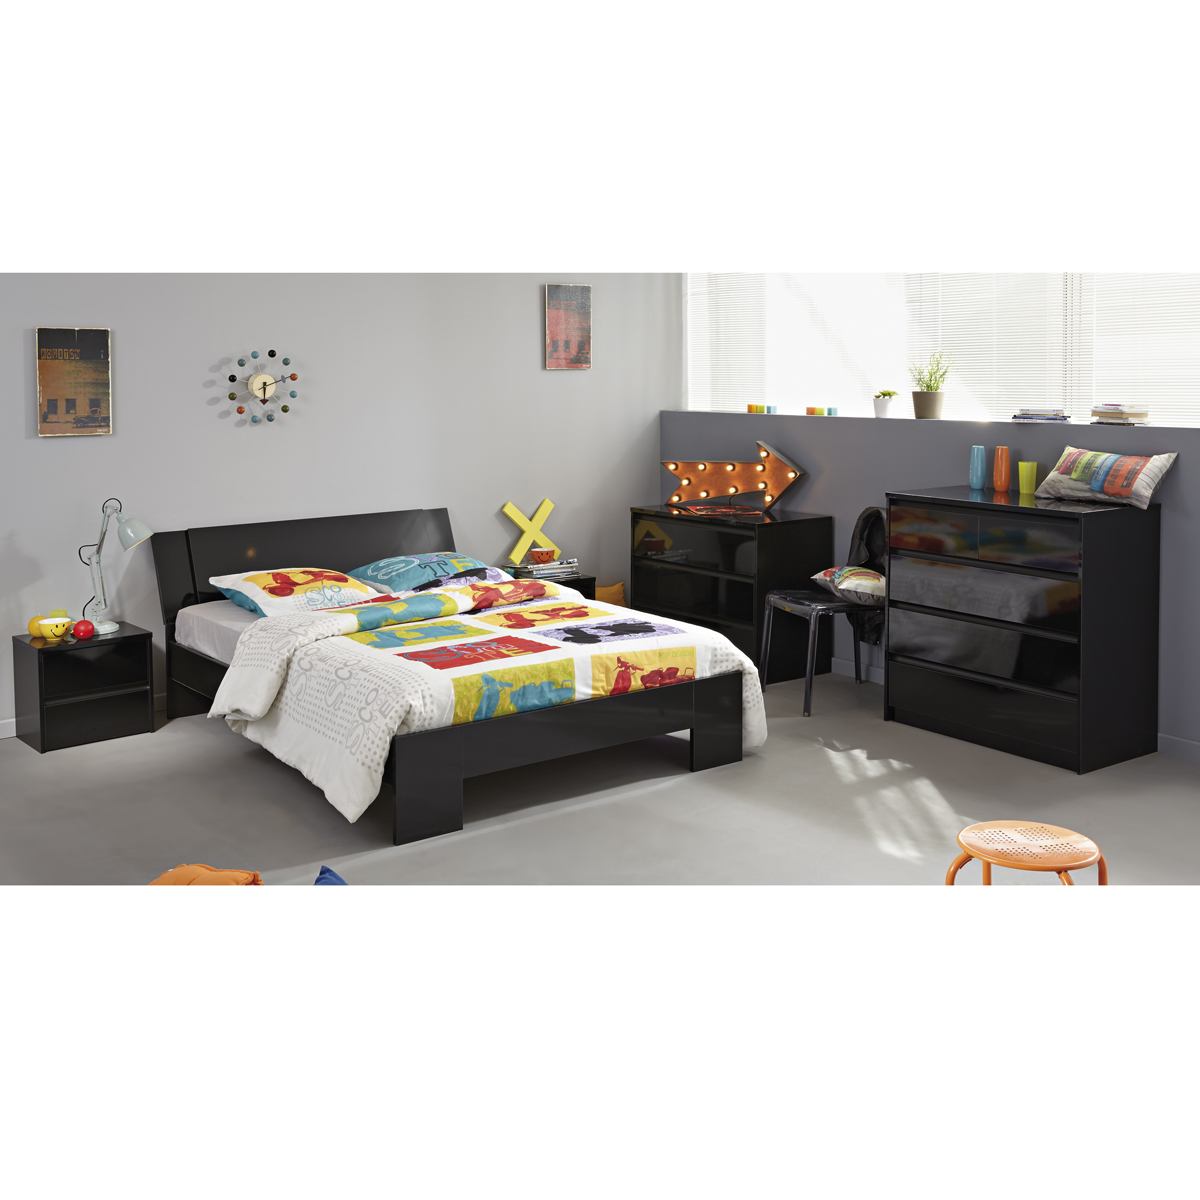 schlafzimmer set 5 tlg ontario 13 jugendzimmer bett 160x200cm schwarz hochglanz ebay. Black Bedroom Furniture Sets. Home Design Ideas